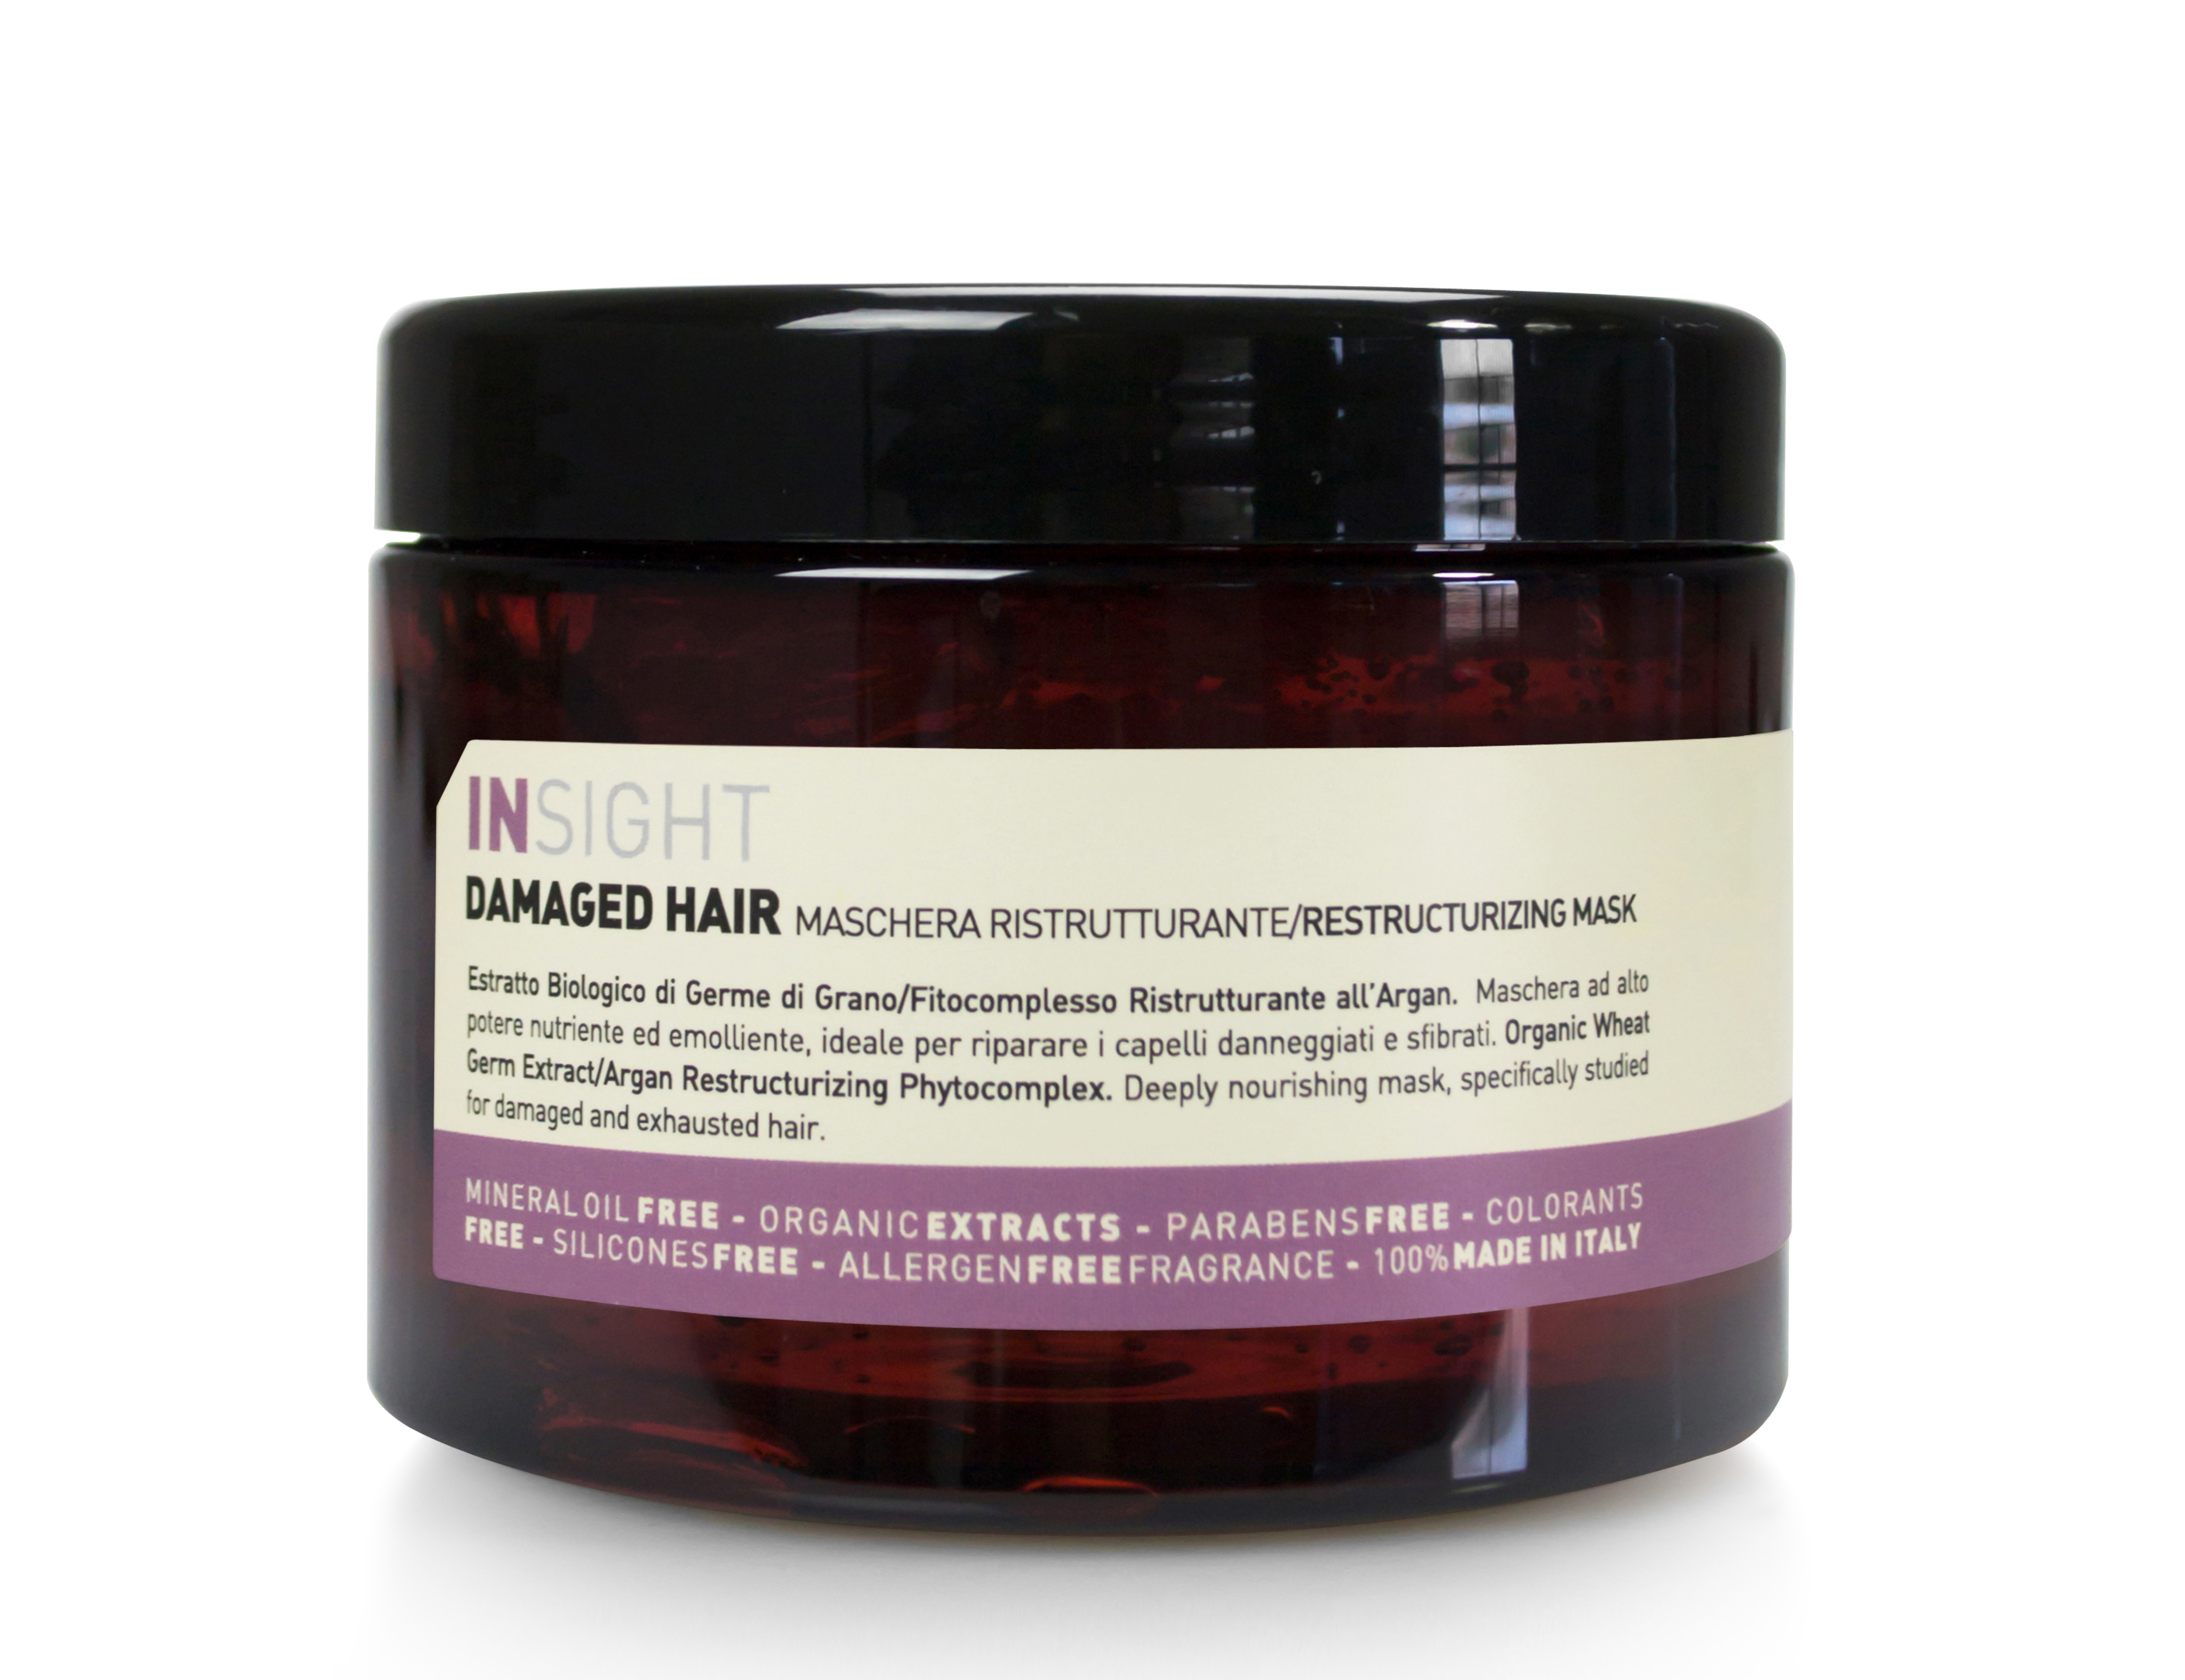 DAMAGED HAIR RESTRUCTURIZING MASK